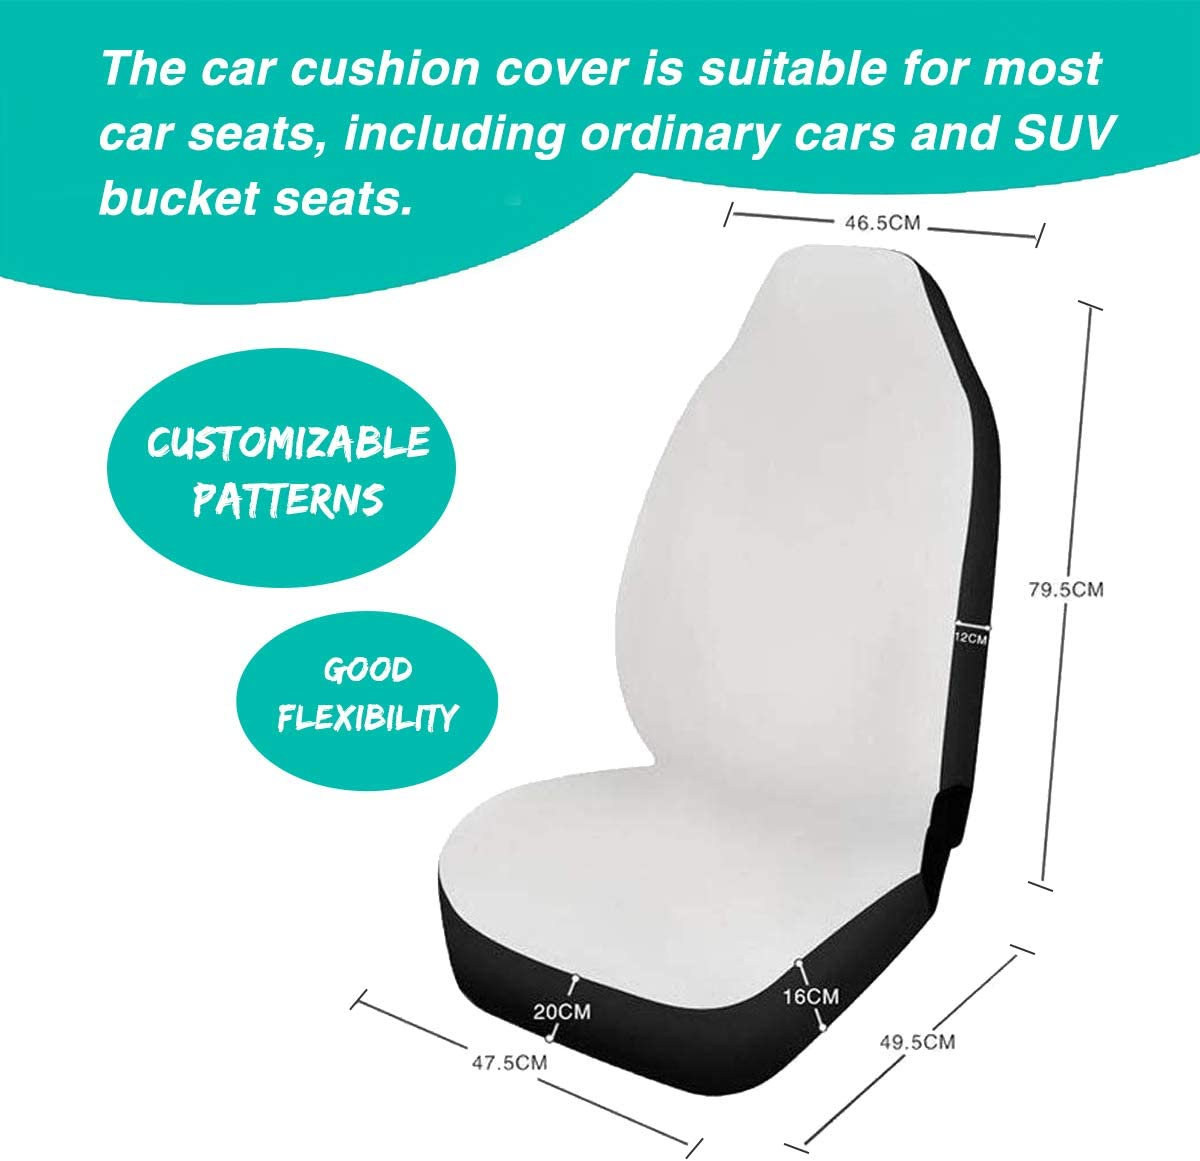 Seat Belt Cushion Shoulder Strap Cloth Auto Armrest Cover Cozeyat Blue Butterfly Car Seat Covers Full Set All Weather Car Floor Mats 10pcs Car Decor Gifts Steering Wheel Cover